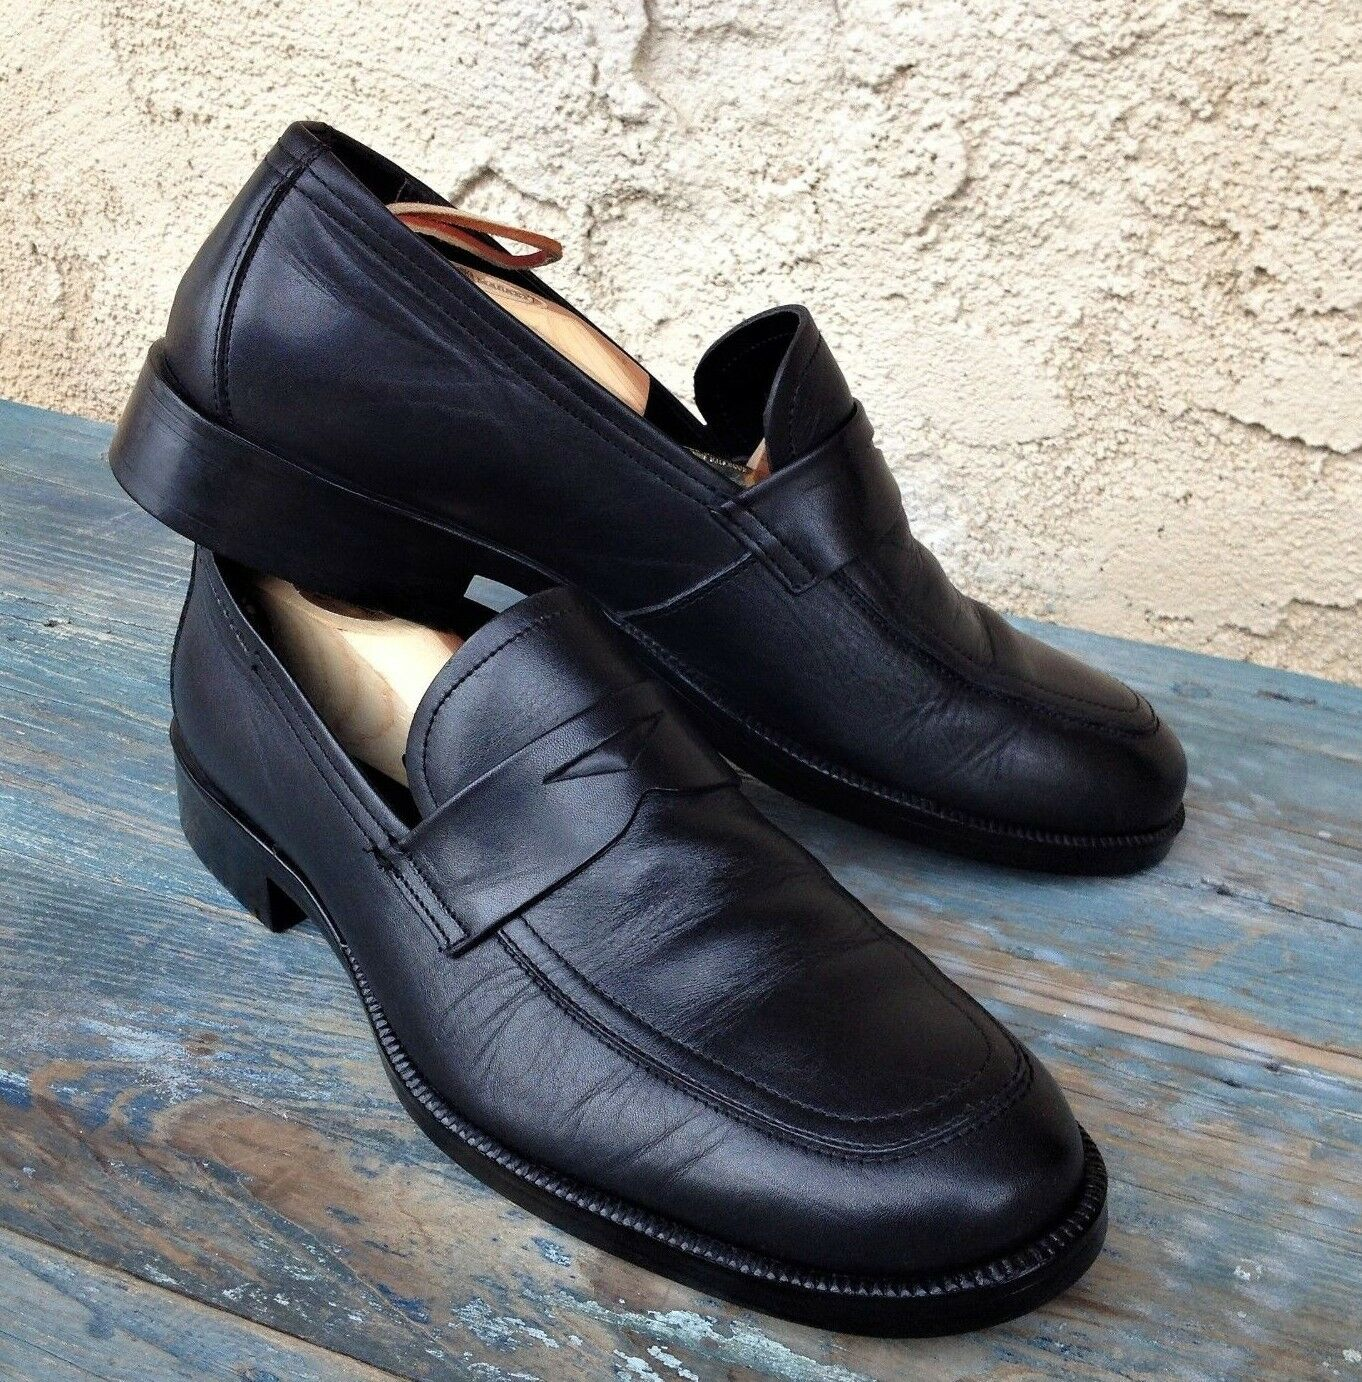 1e86697d3d9b6a MARC O POLO O POLO O POLO of SWEDEN BLACK LEATHER SLIP-ON PENNY LOAFERS  MOCCASINS MEN S US 10 047747